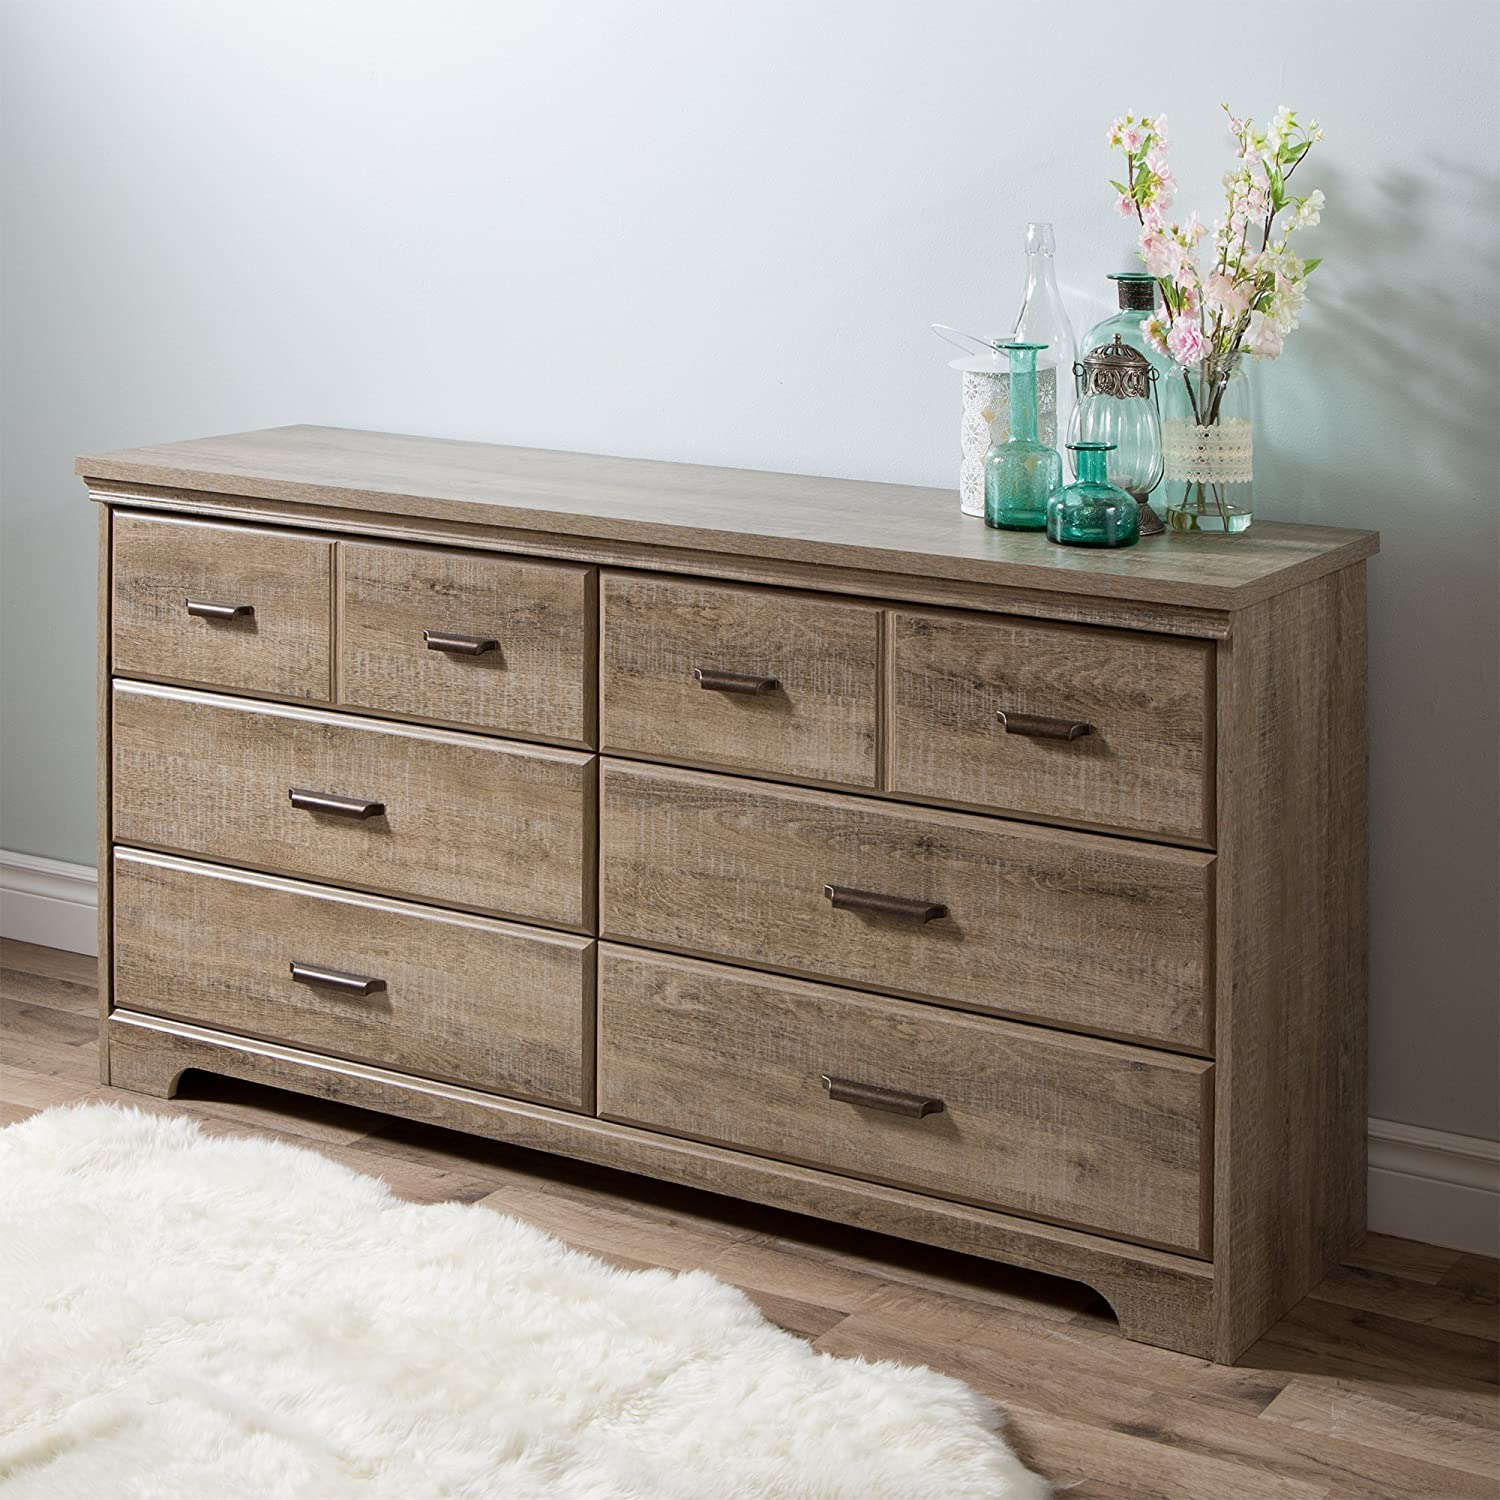 amazoncom south shore versa 6drawer double dresser for bedrooms hallways or living rooms 59 u201d x 16 u201d x 31u201d weathered oak kitchen u0026 dining